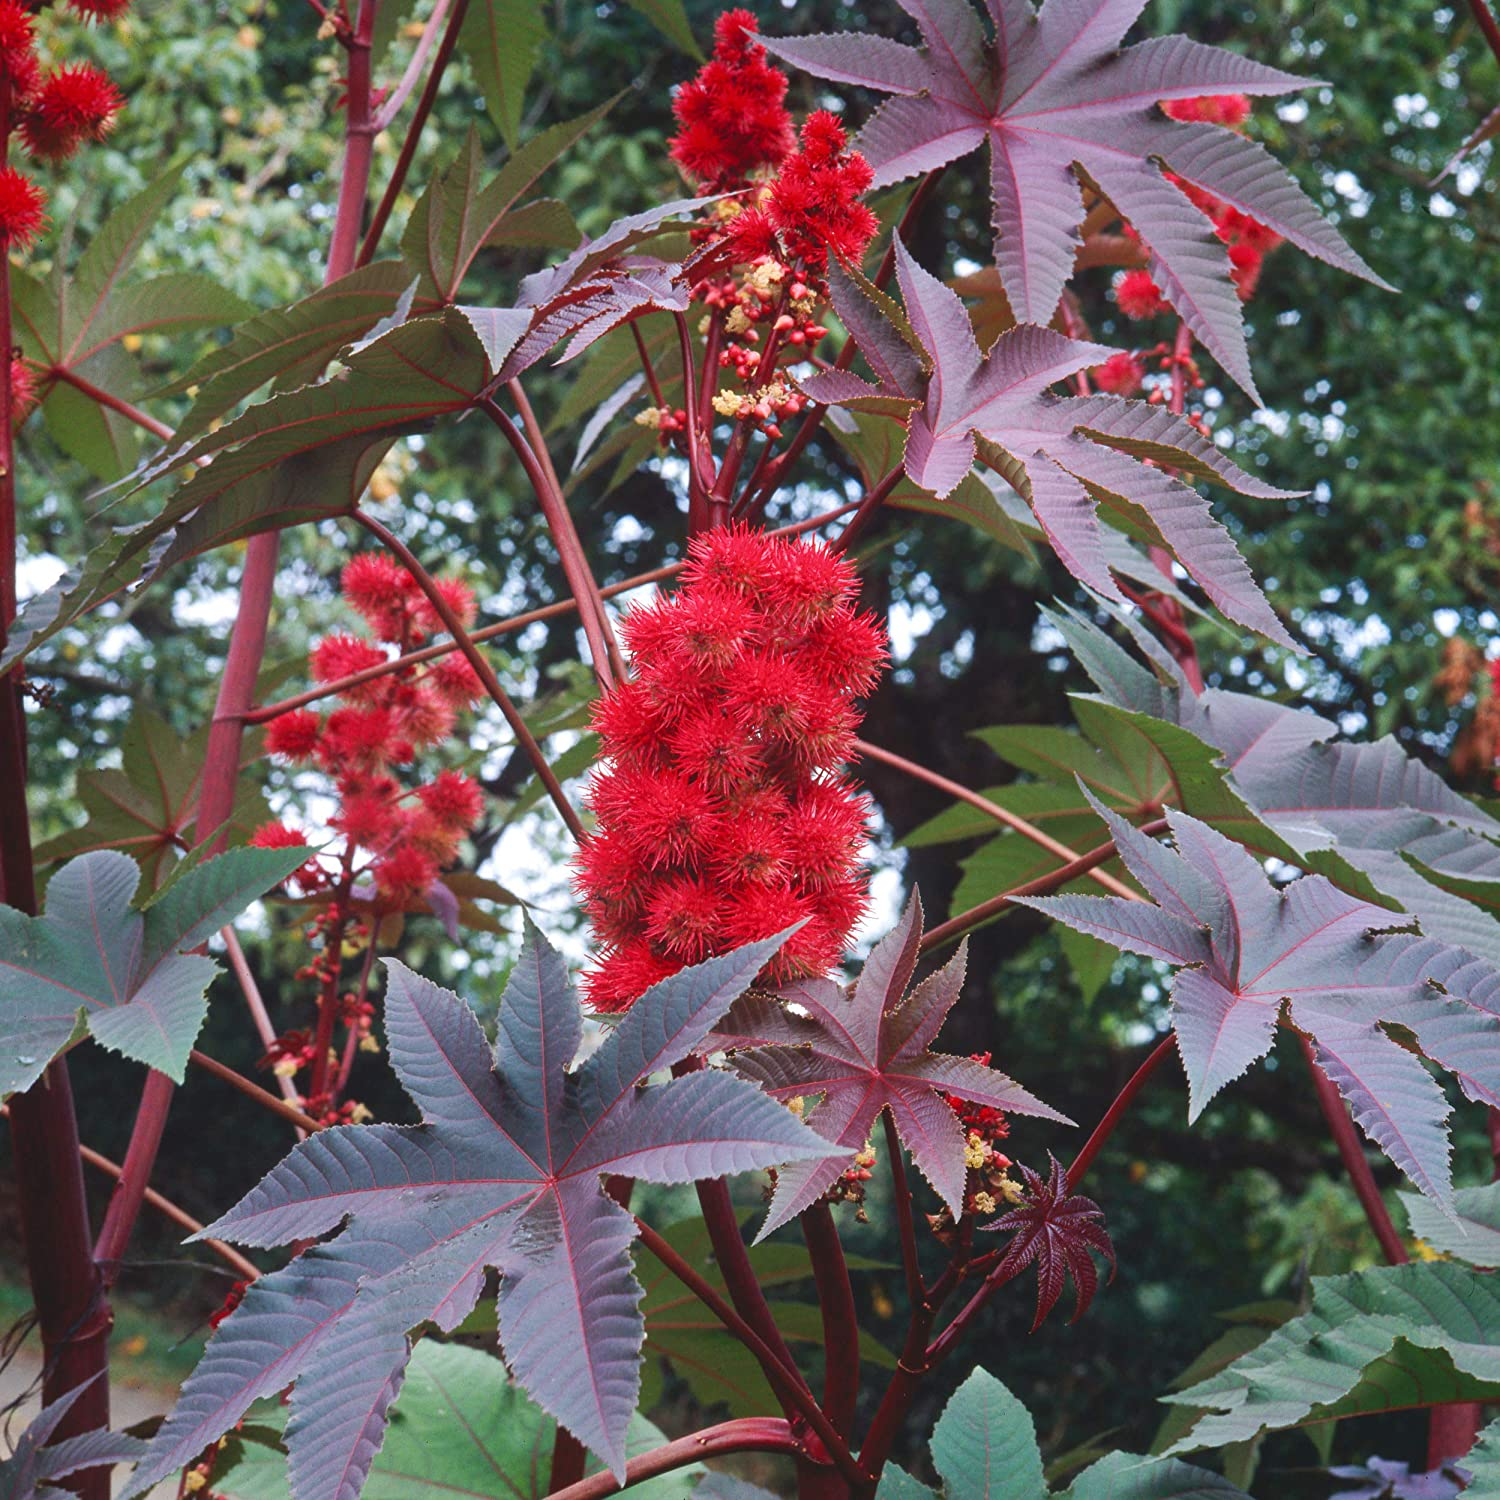 Amazon.com: Outsidepride Impala Ricinus Communis Castor Bean Plant Seed -  50 Seeds: Garden & Outdoor